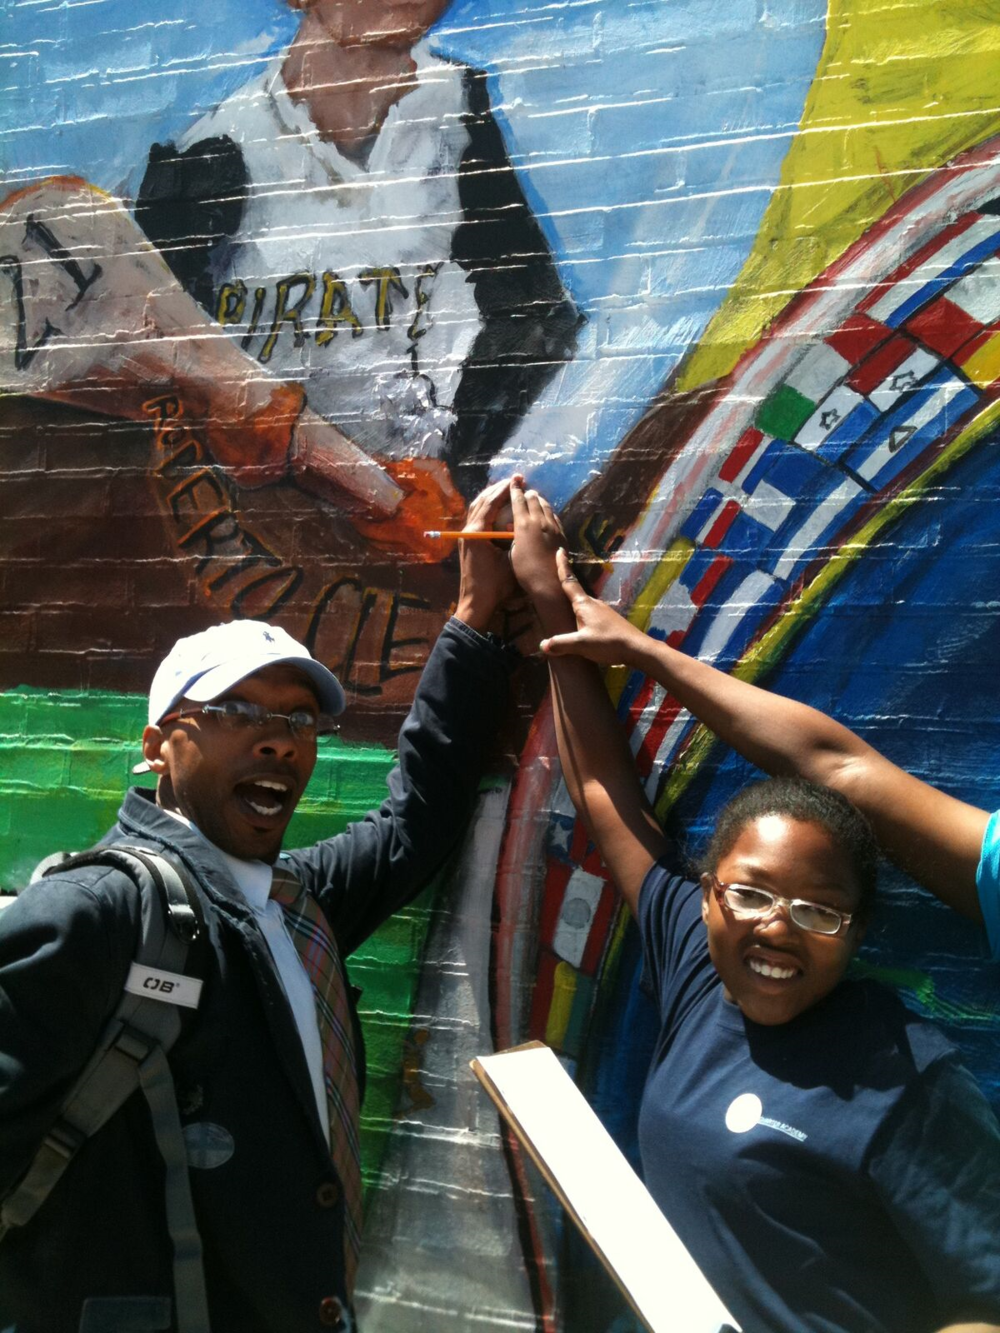 Humboldt Park Mural Arts Project